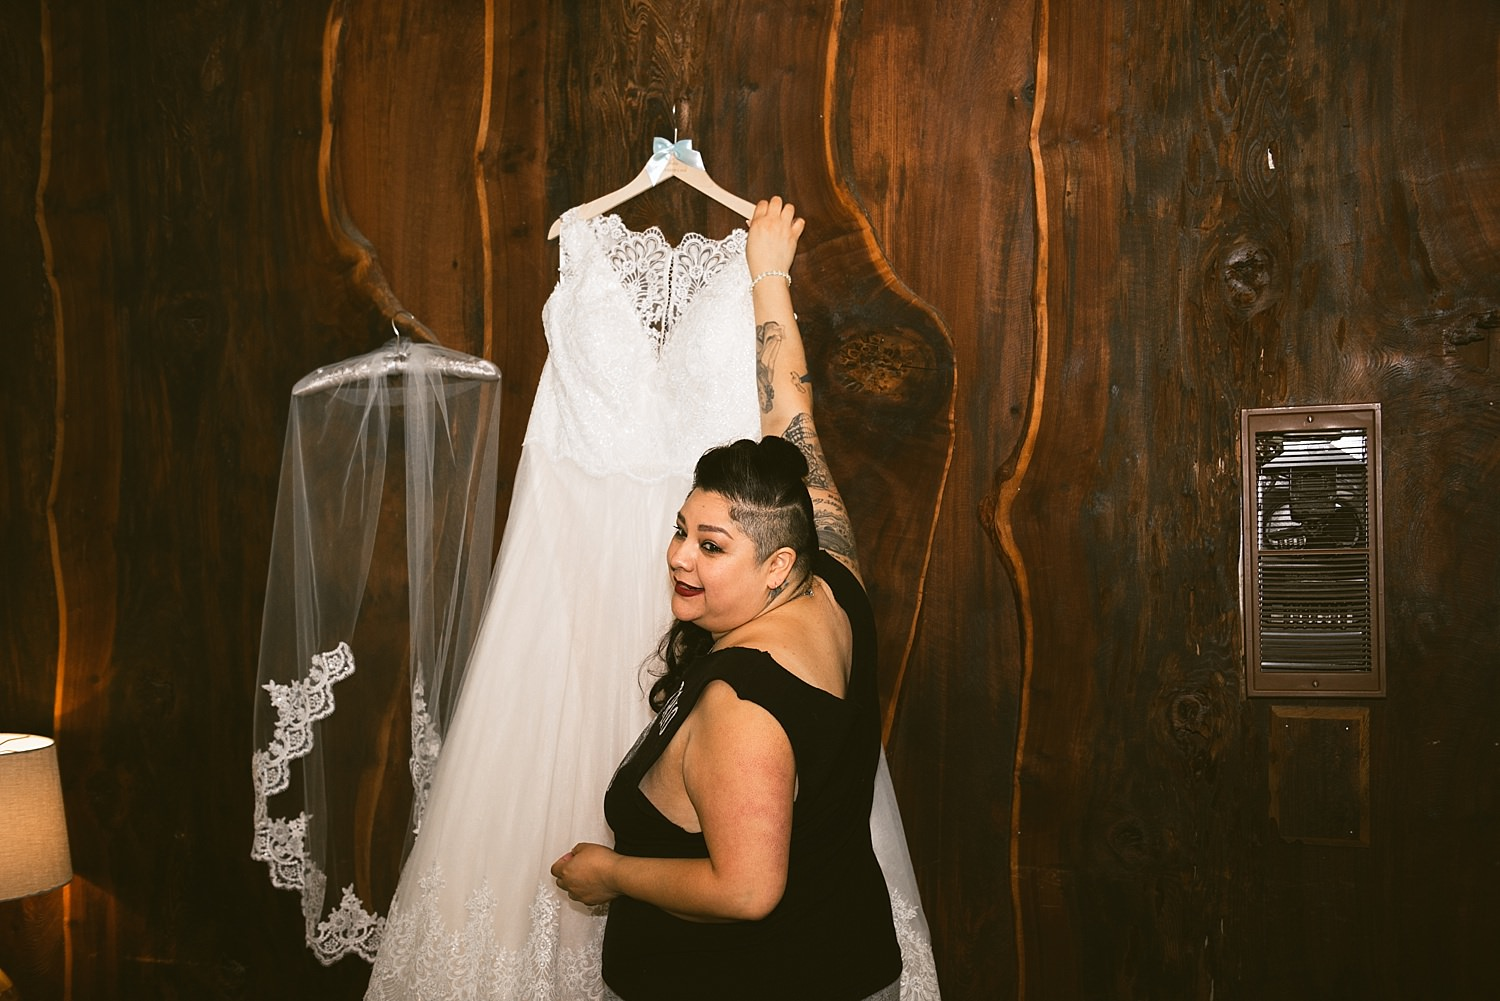 Bride getting her dress on